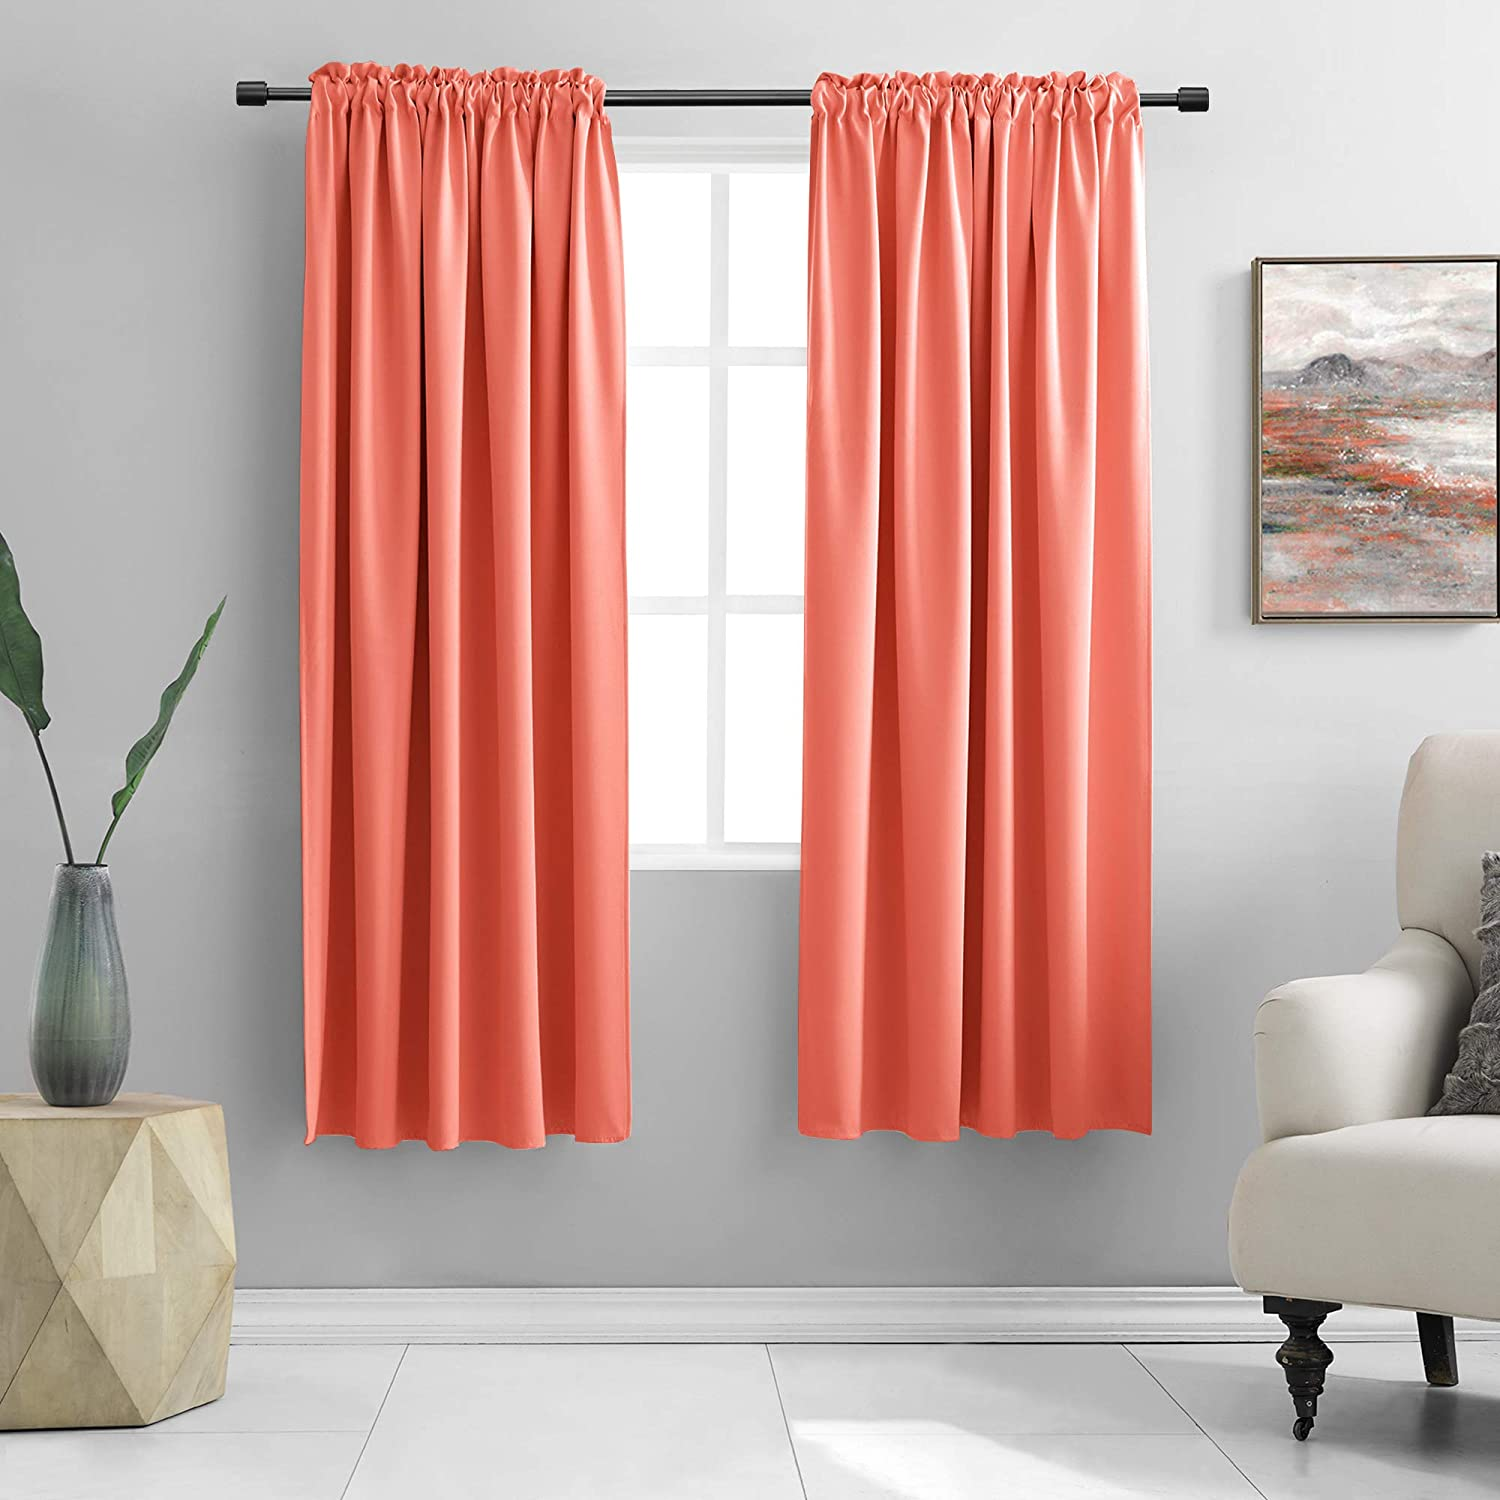 Donren Room Darkening Rod Pocket Curtain Panels Thermal Insulated Curtains For Living Room Coral 42 W X 72 L Inch 2 Panels Home Kitchen